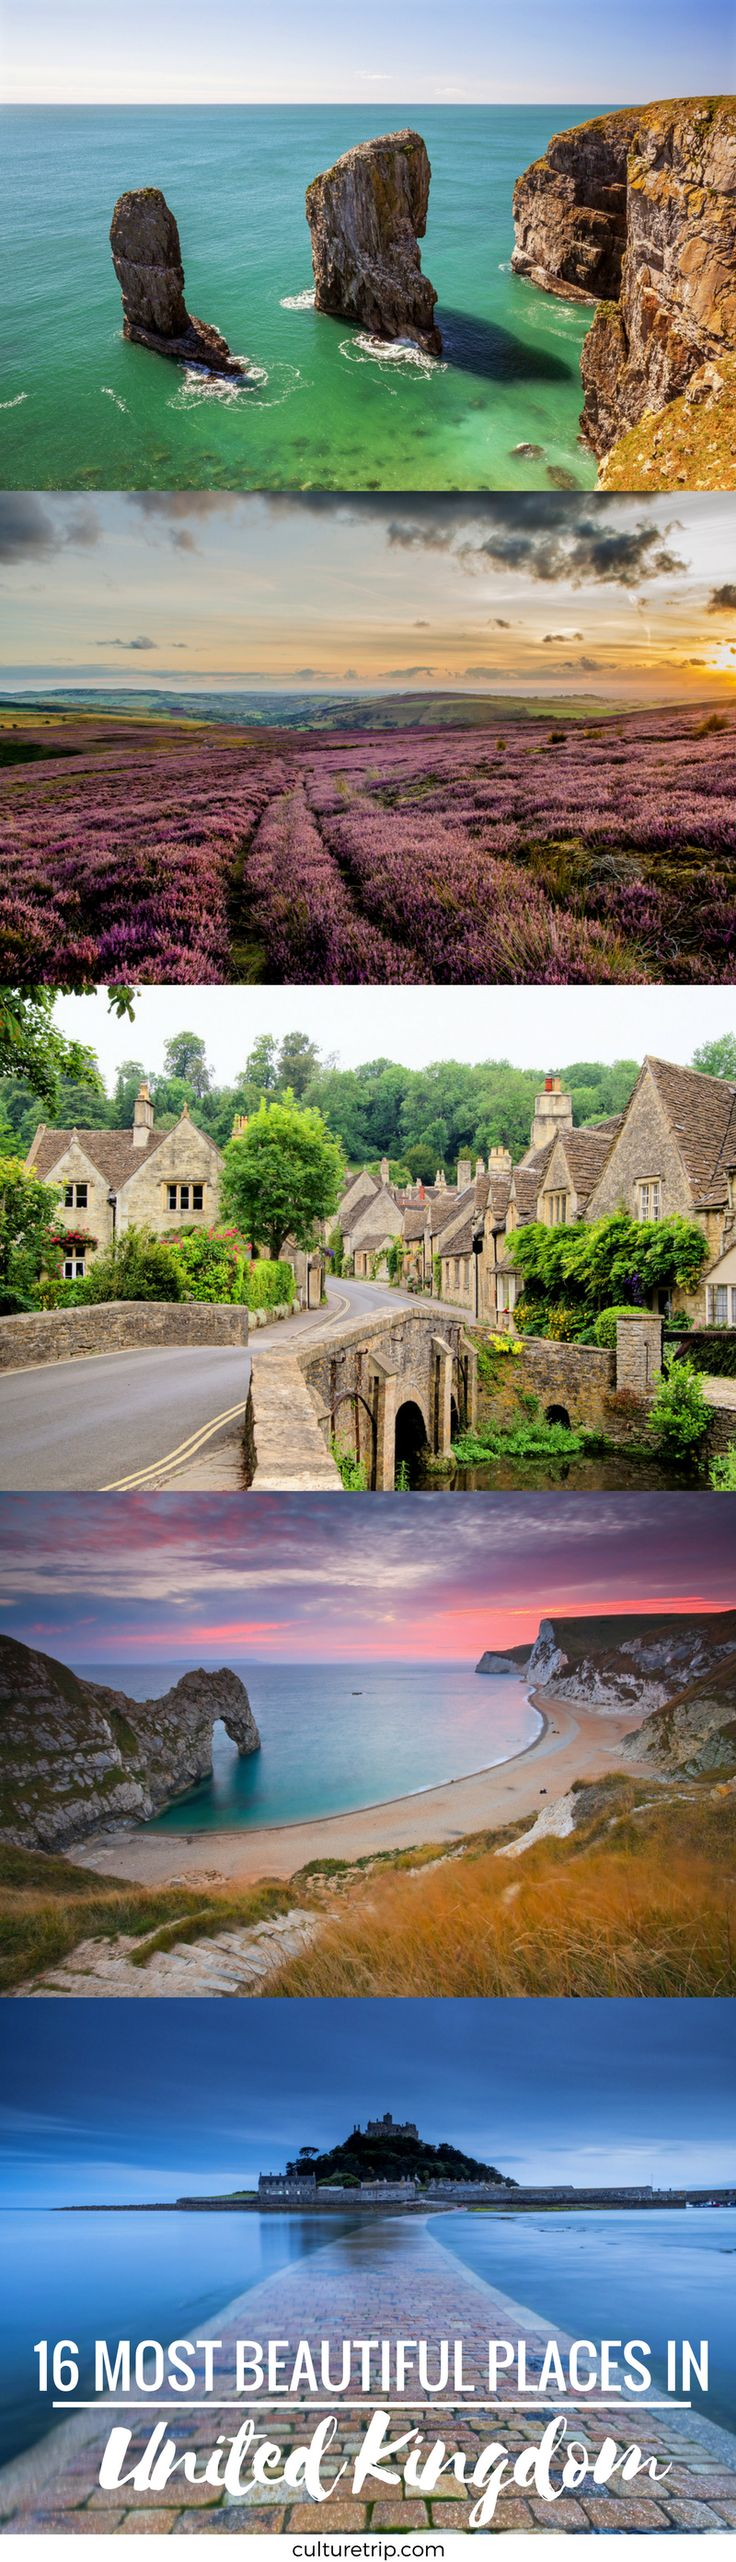 The 16 Most Beautiful Places To See In The United Kingdom                                                                                                                                                                                 More